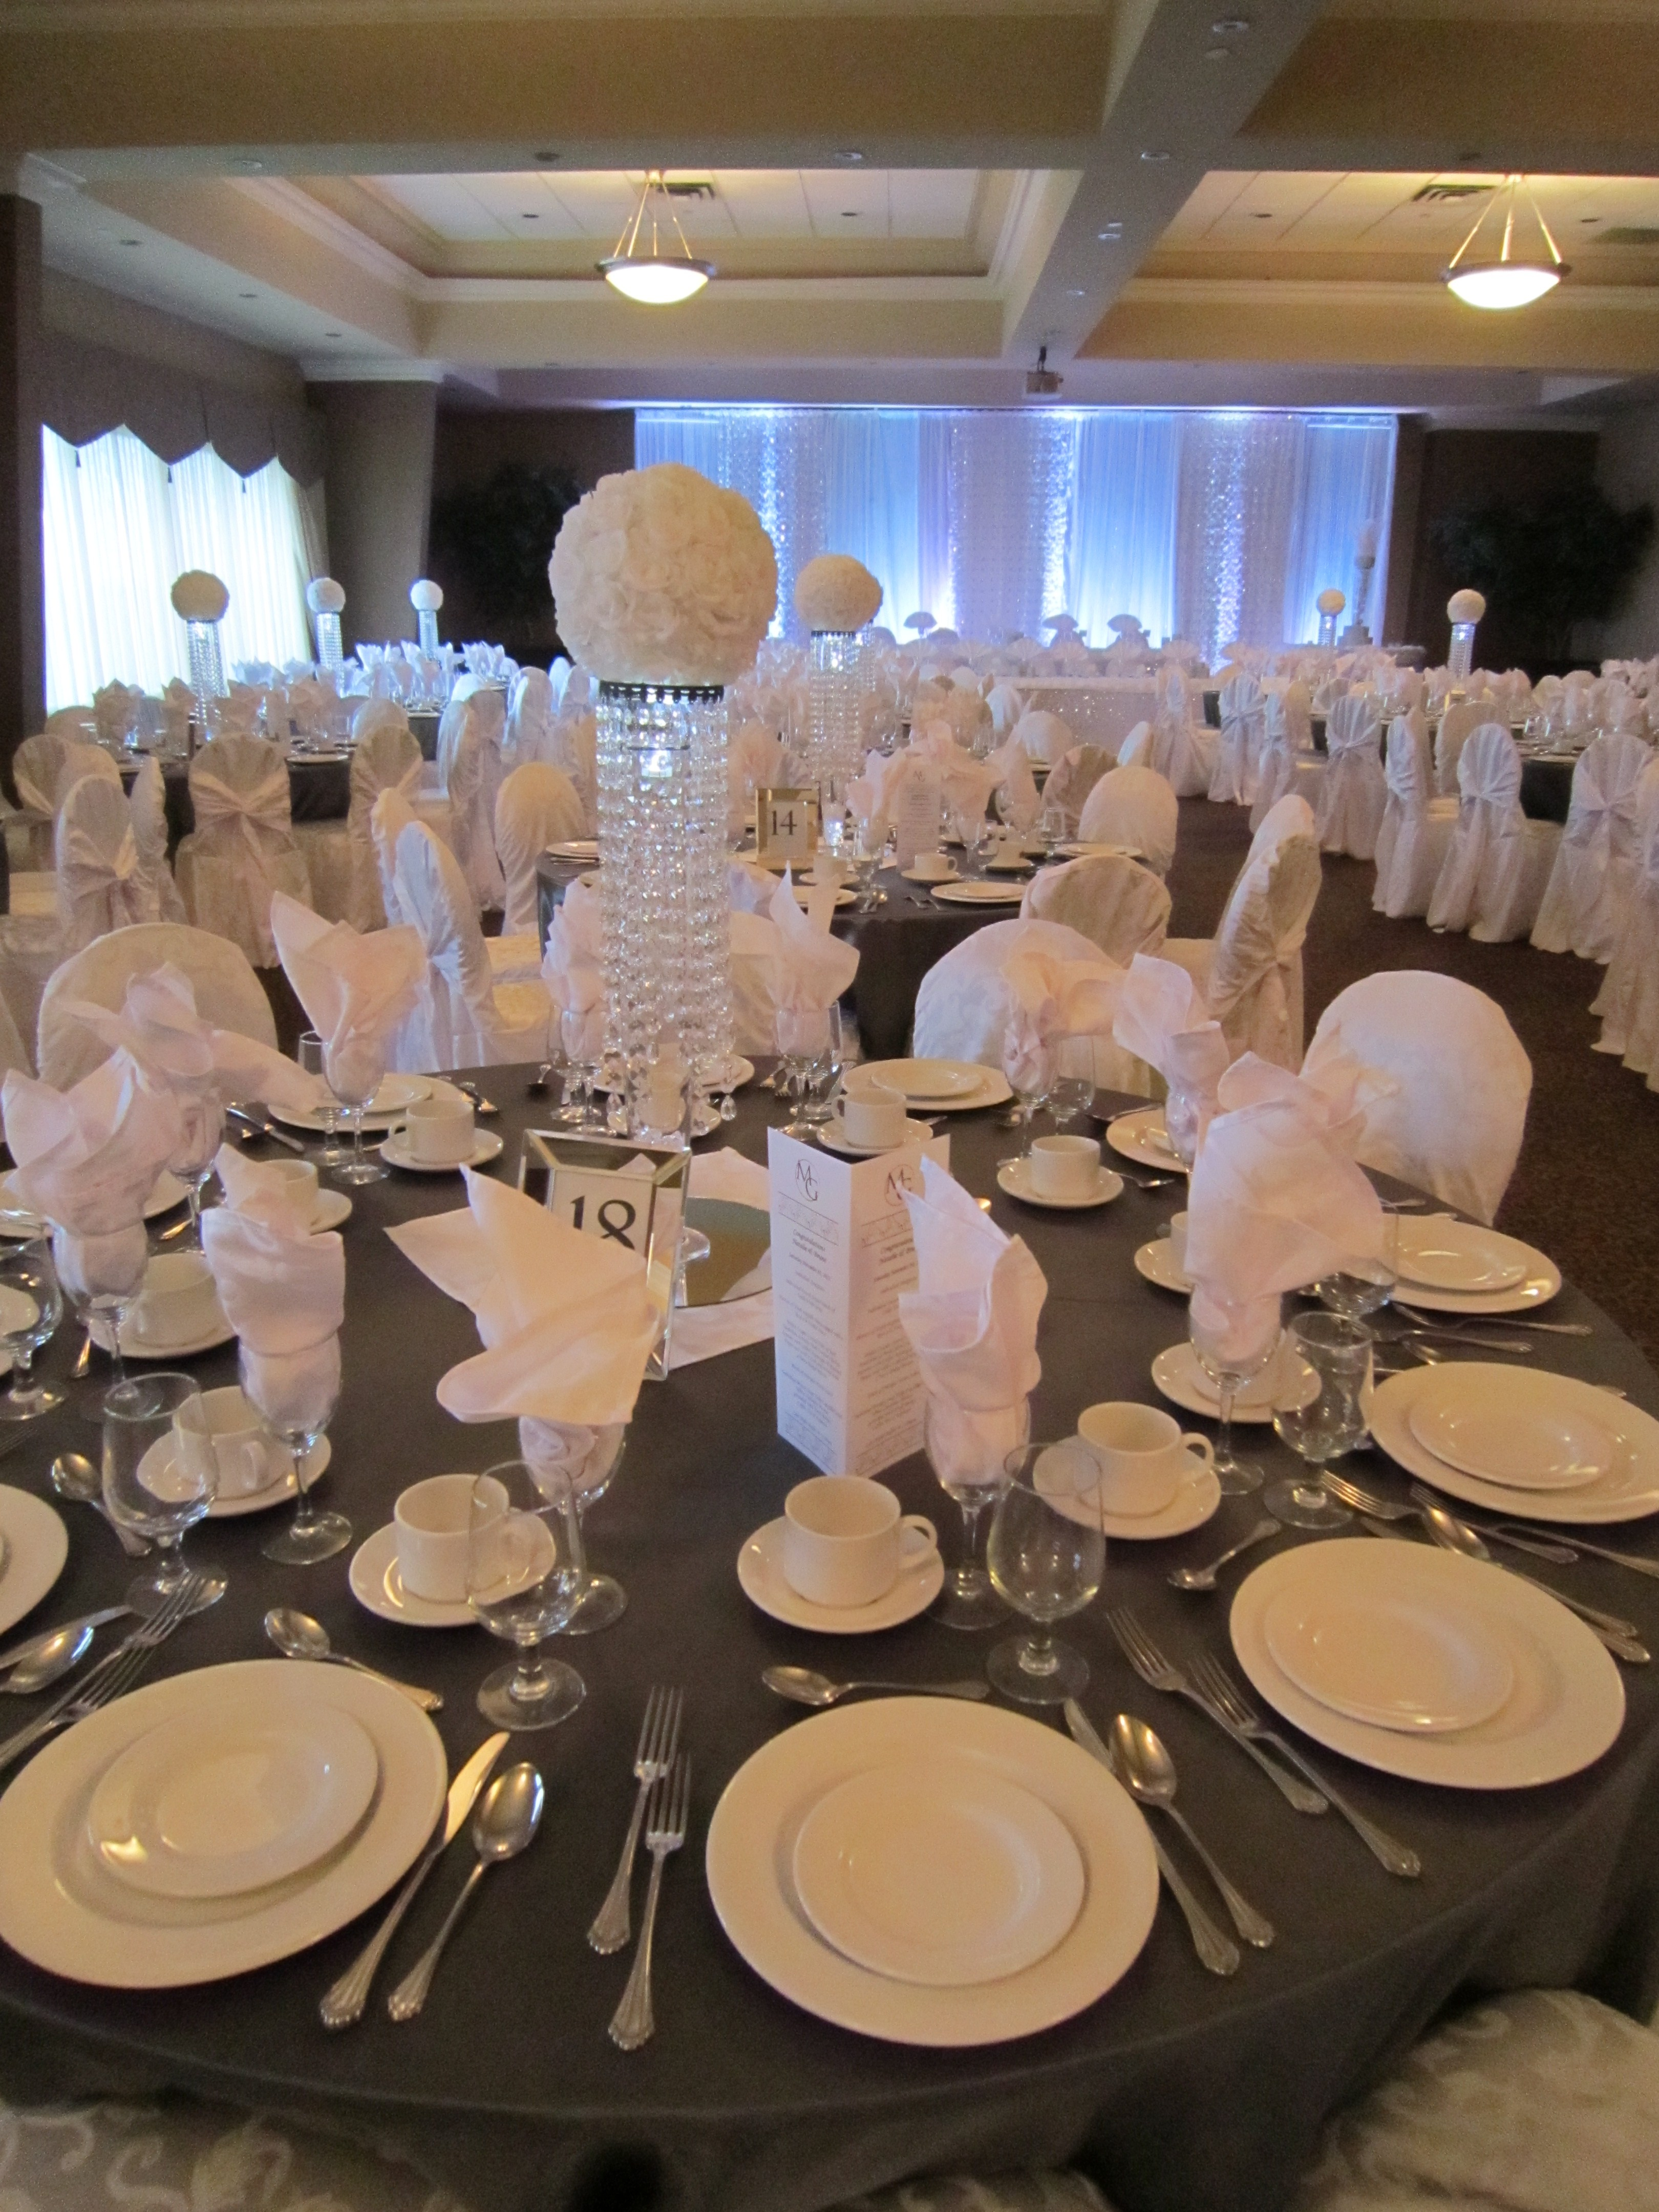 Crystal Centerpieces Set The Mood Decor Page 2